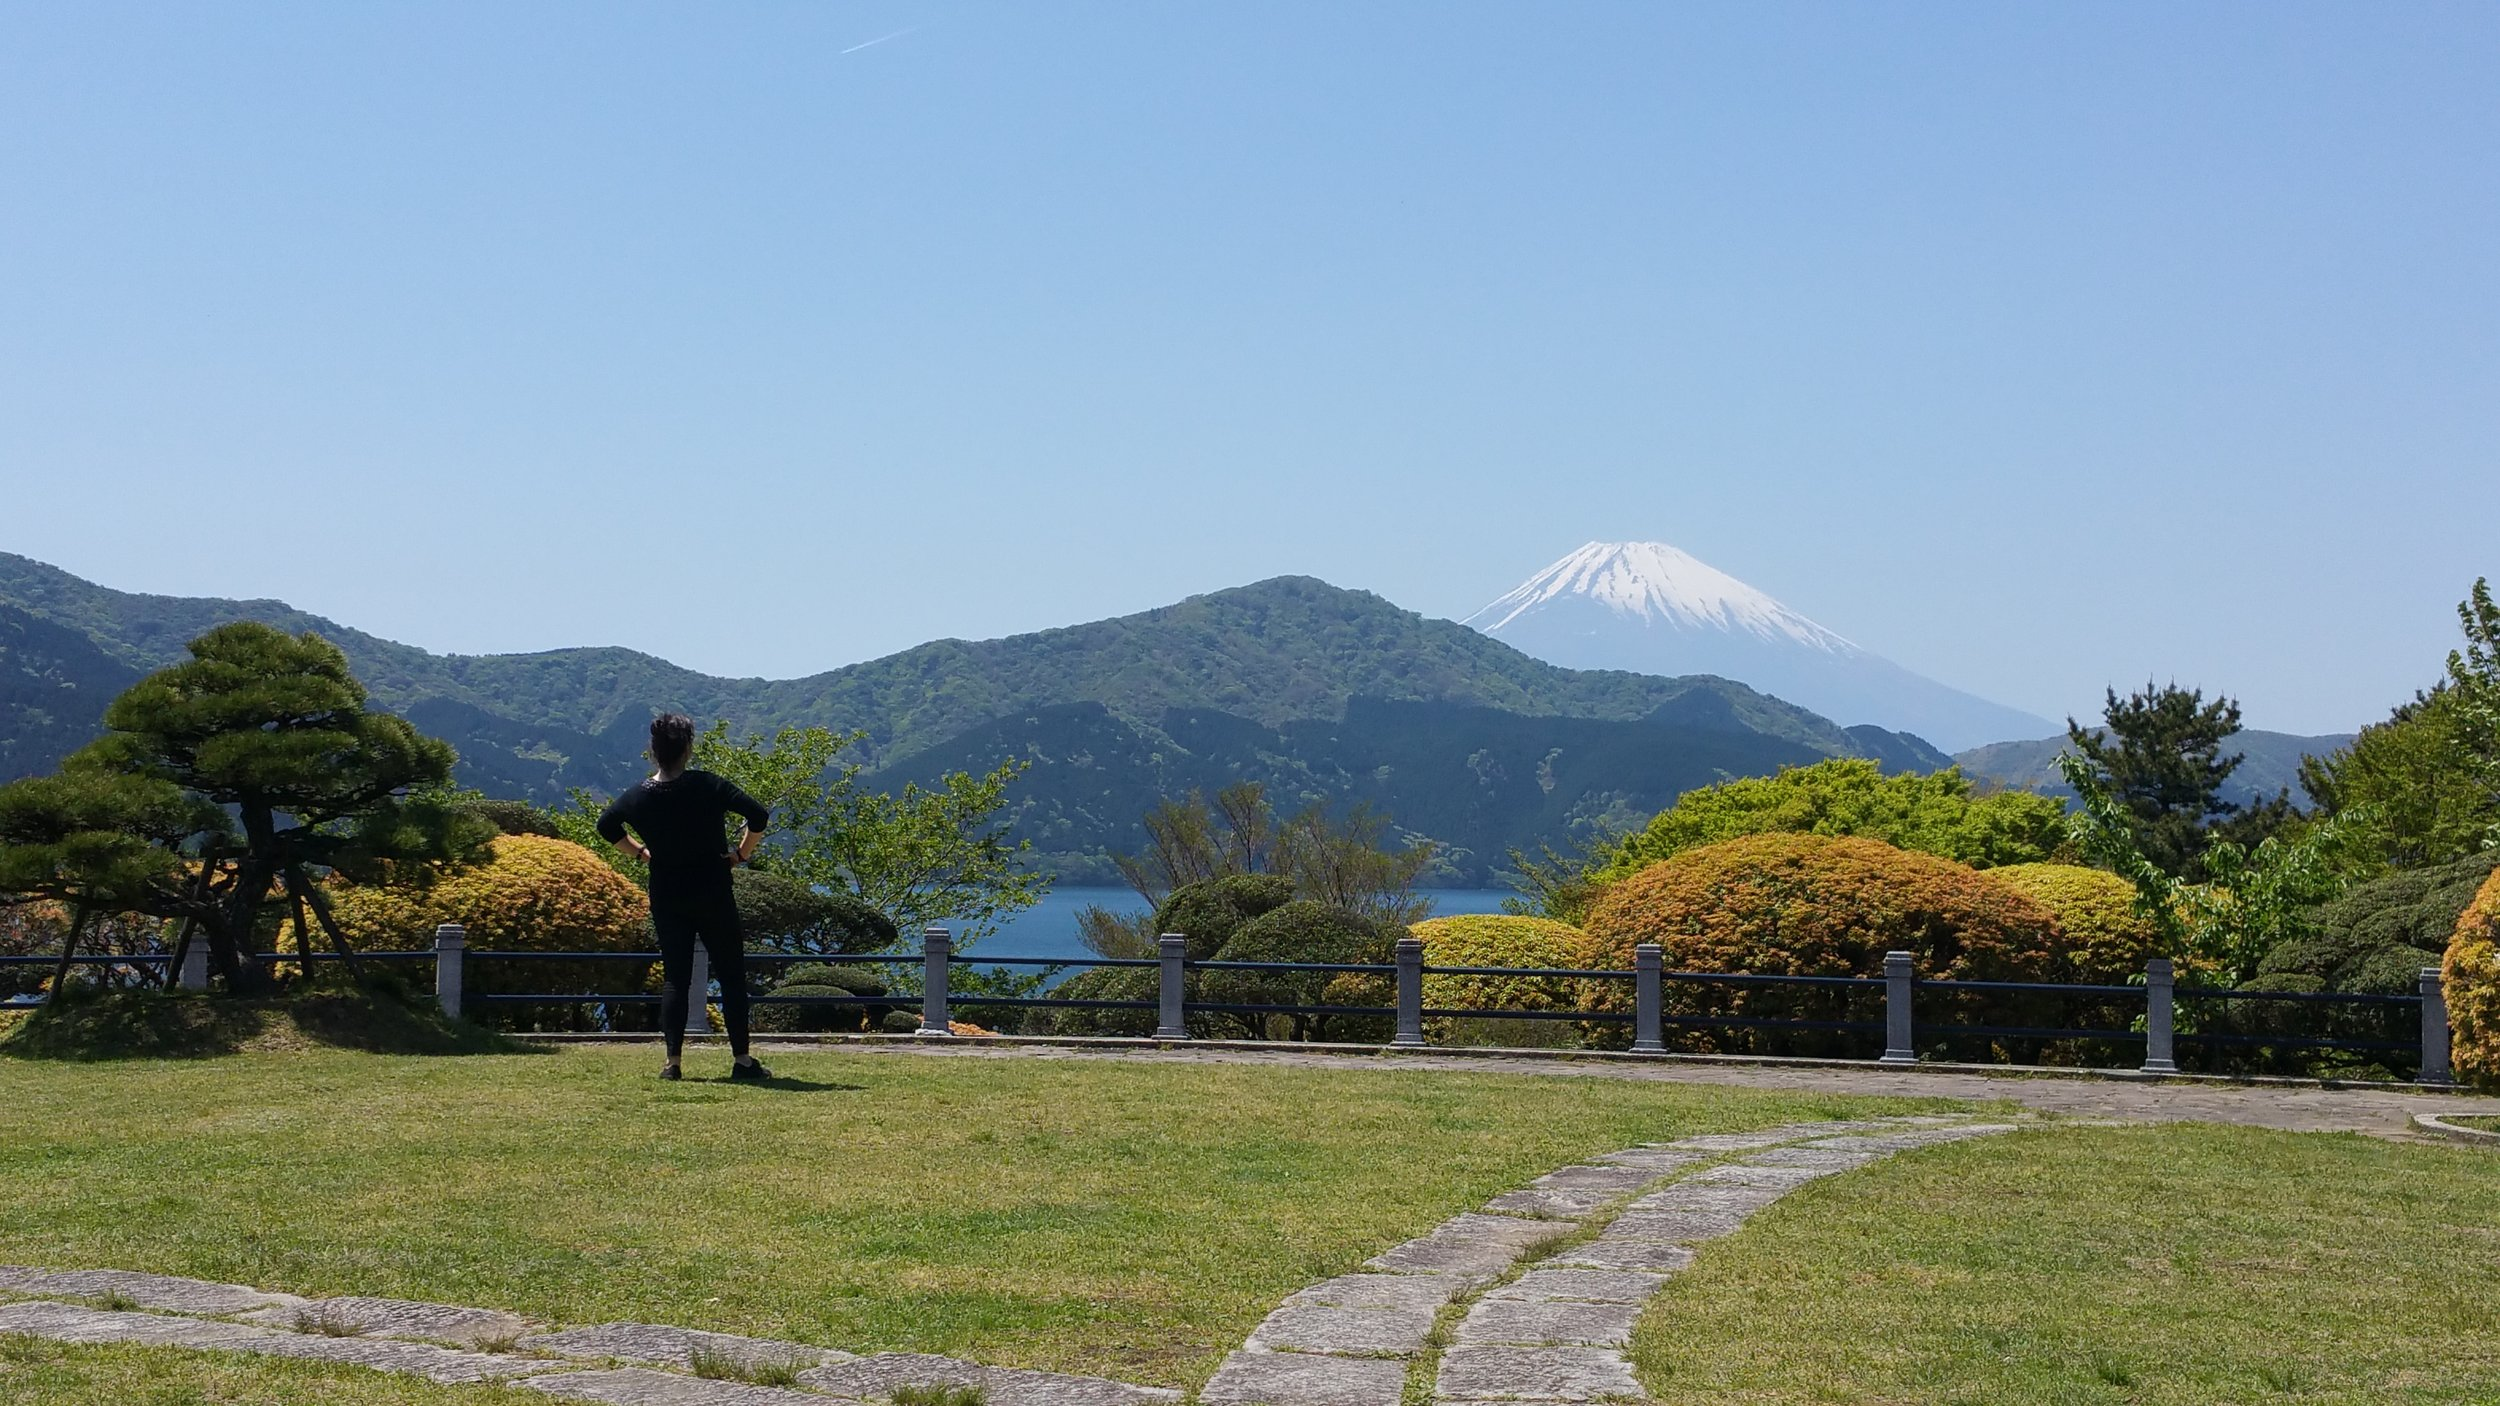 Viewing Mount Fuji from Hakone, May 2016, and vaguely fantasizing about climbing it;little did I think I would do so just three months later.